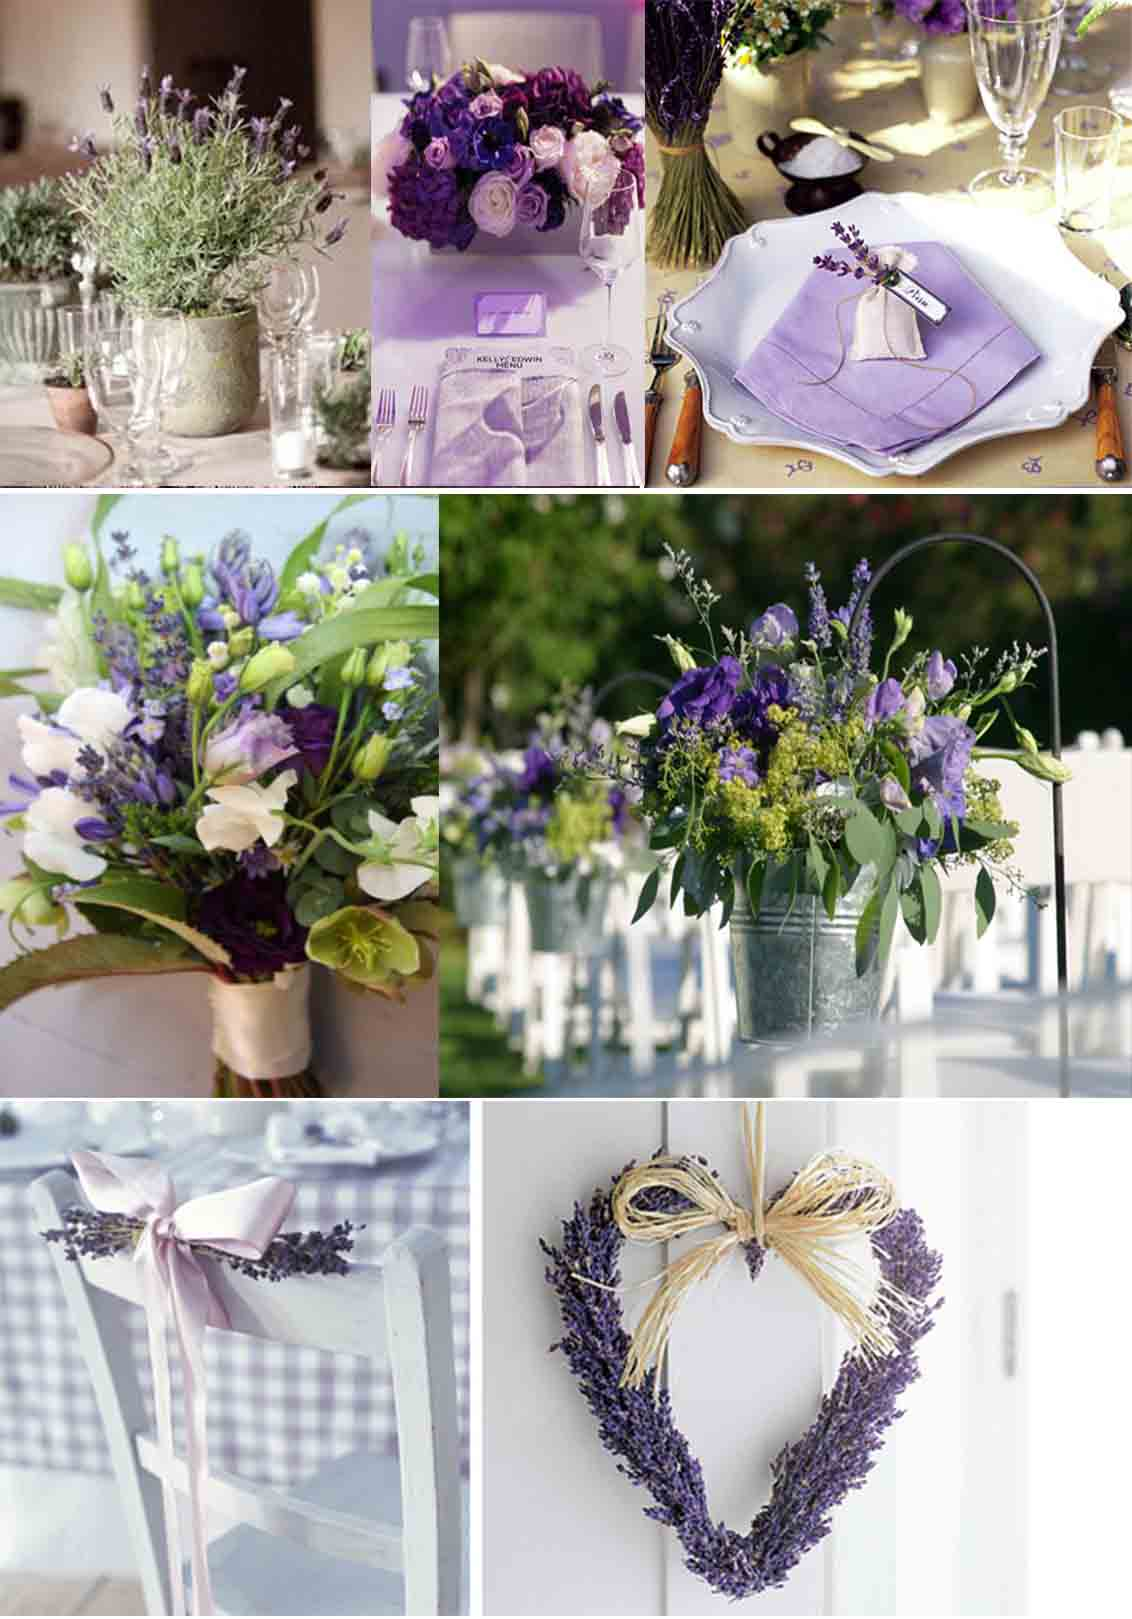 Ideas Of Summer Wedding-Romantic Lavender Themed Wedding